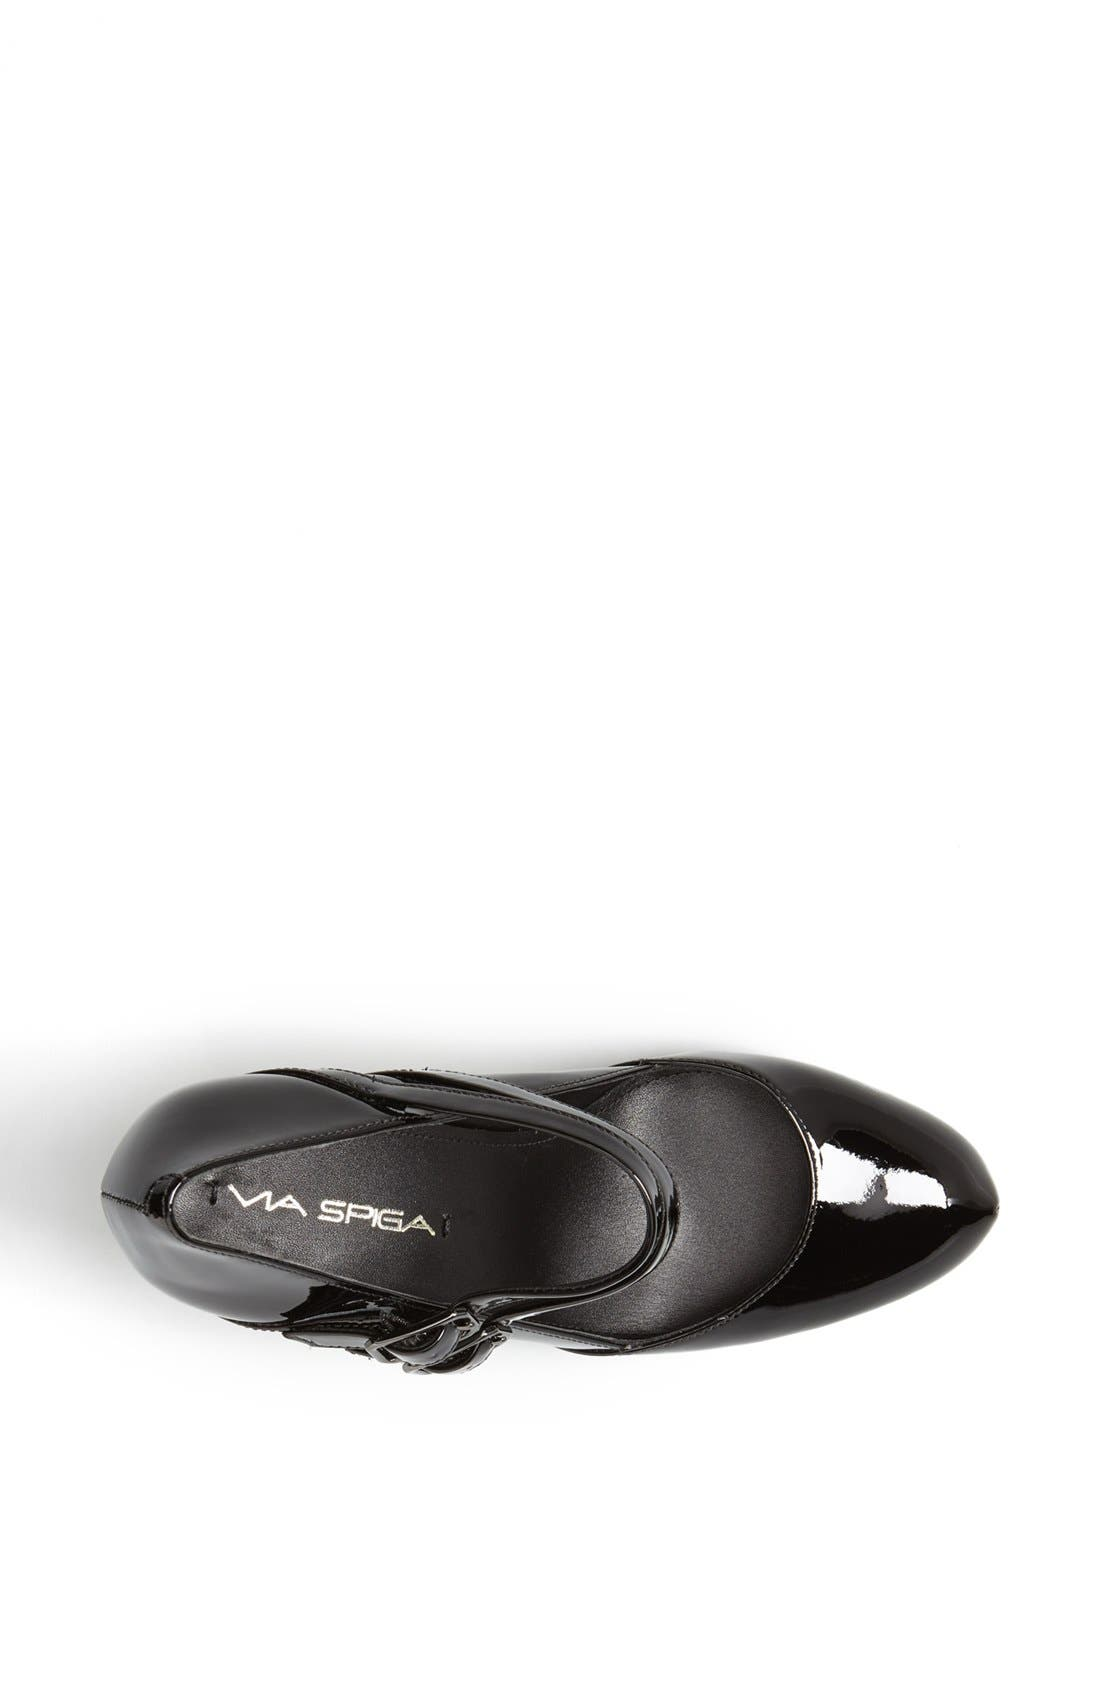 Alternate Image 3  - Via Spiga 'Ballard' Mary Jane Pump